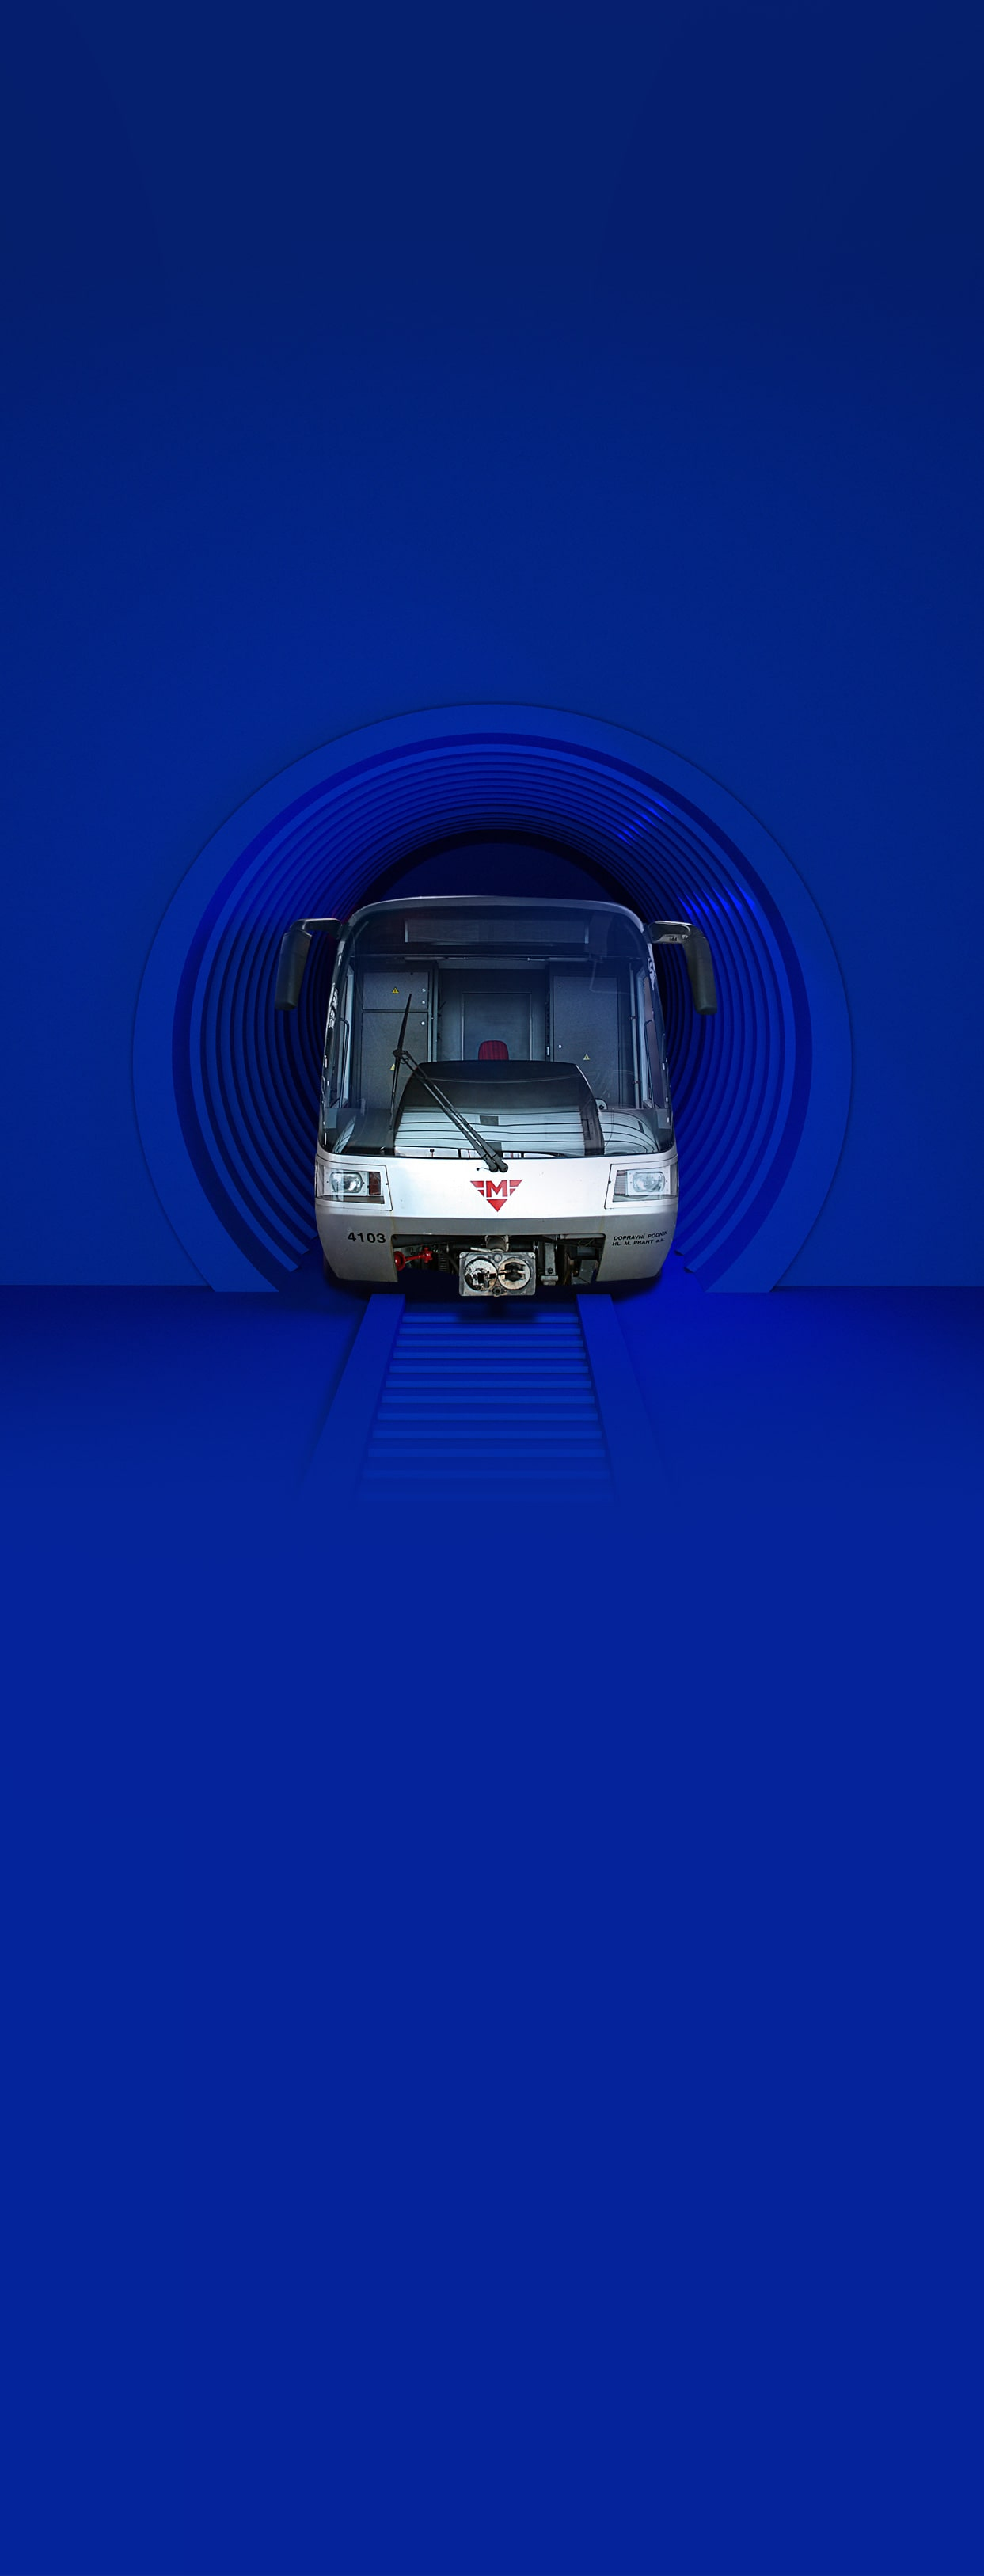 Take a ride on the Prague metro along the future D line